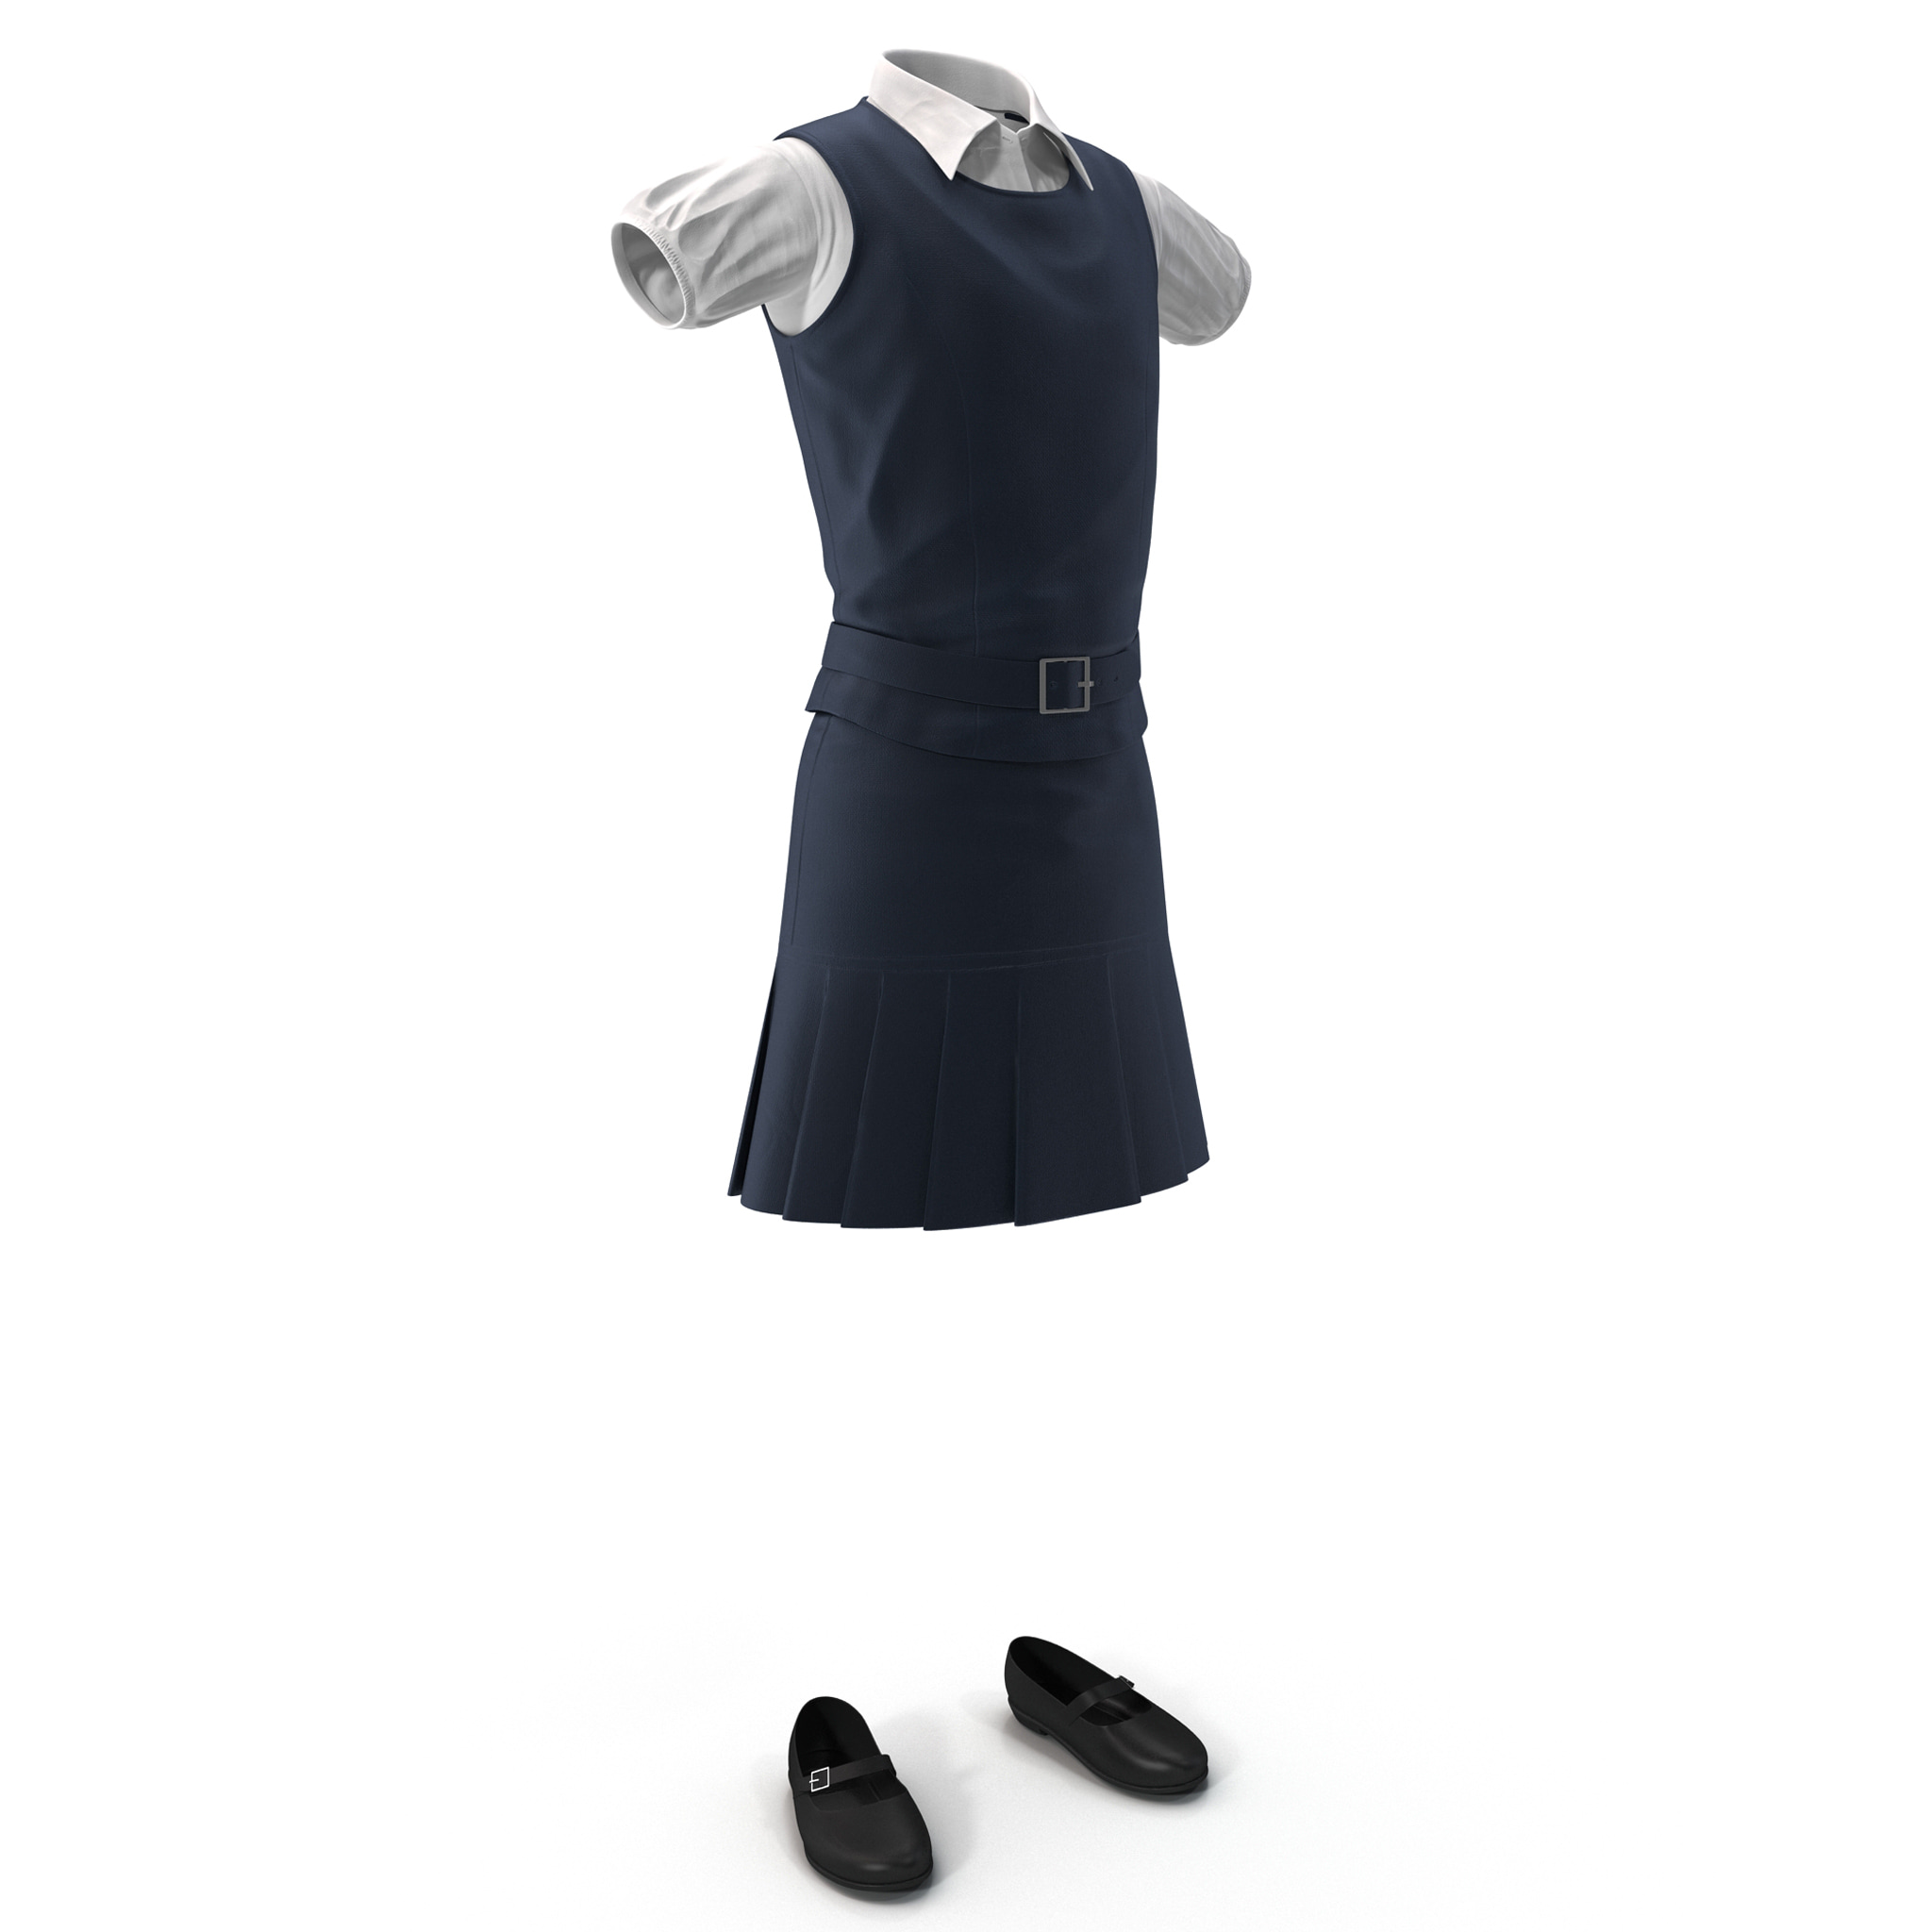 3d model of school uniform